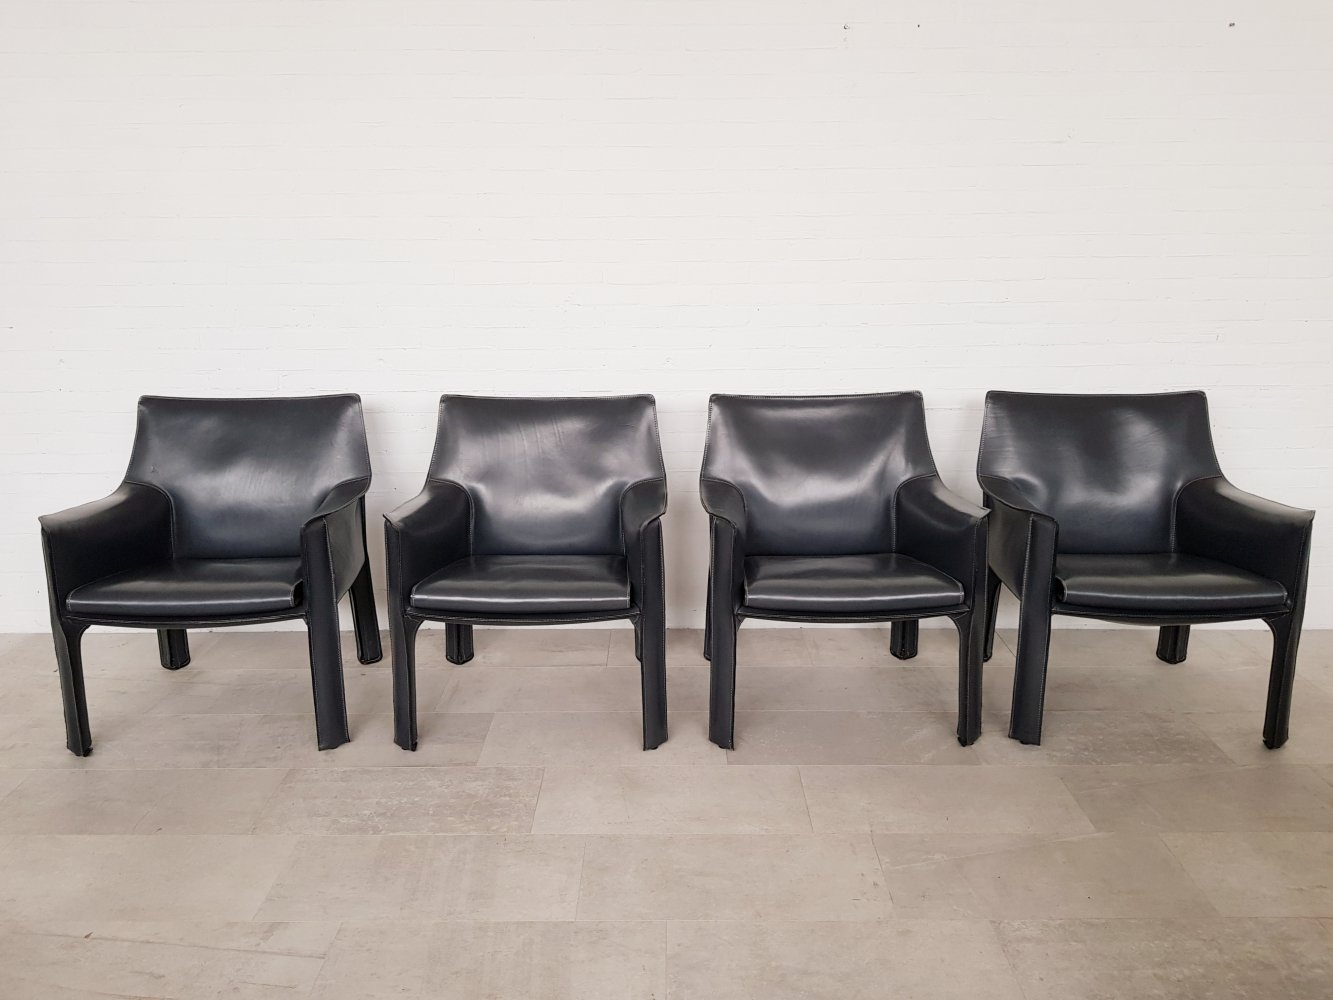 Mario Bellini CAB 414 chairs for Cassina in dark grey leather, 1980s